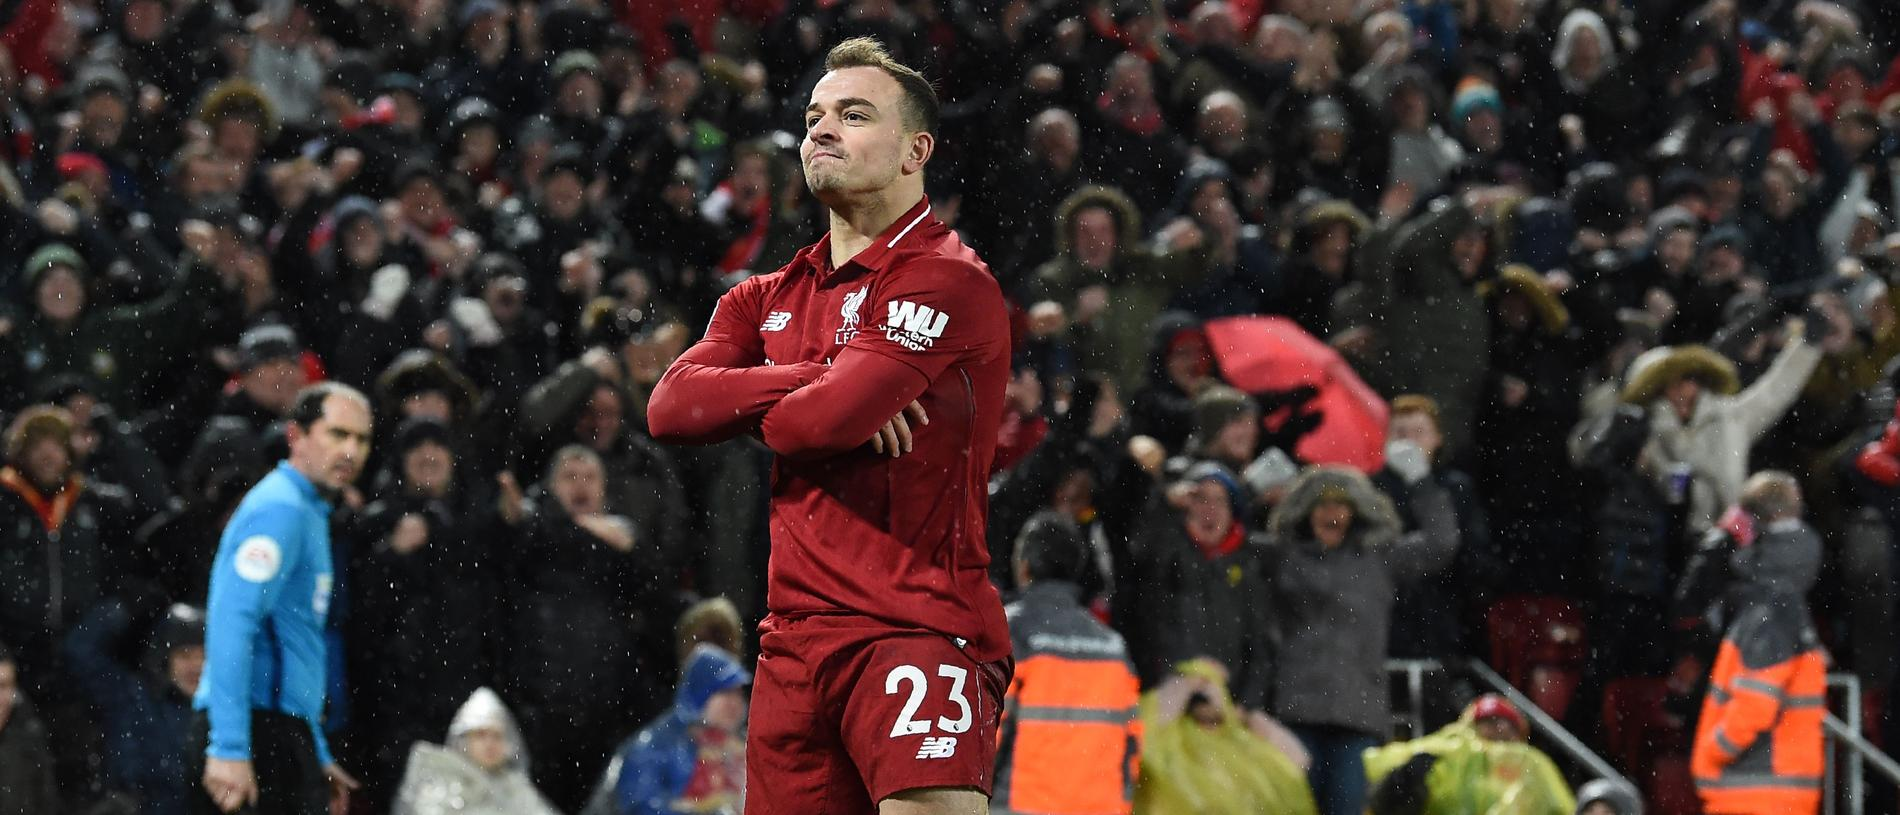 Liverpool's Swiss midfielder Xherdan Shaqiri celebrates after scoring their second goal during the English Premier League football match between Liverpool and Manchester United at Anfield in Liverpool, north west England on December 16, 2018. (Photo by Paul ELLIS / AFP) / RESTRICTED TO EDITORIAL USE. No use with unauthorized audio, video, data, fixture lists, club/league logos or 'live' services. Online in-match use limited to 120 images. An additional 40 images may be used in extra time. No video emulation. Social media in-match use limited to 120 images. An additional 40 images may be used in extra time. No use in betting publications, games or single club/league/player publications. /